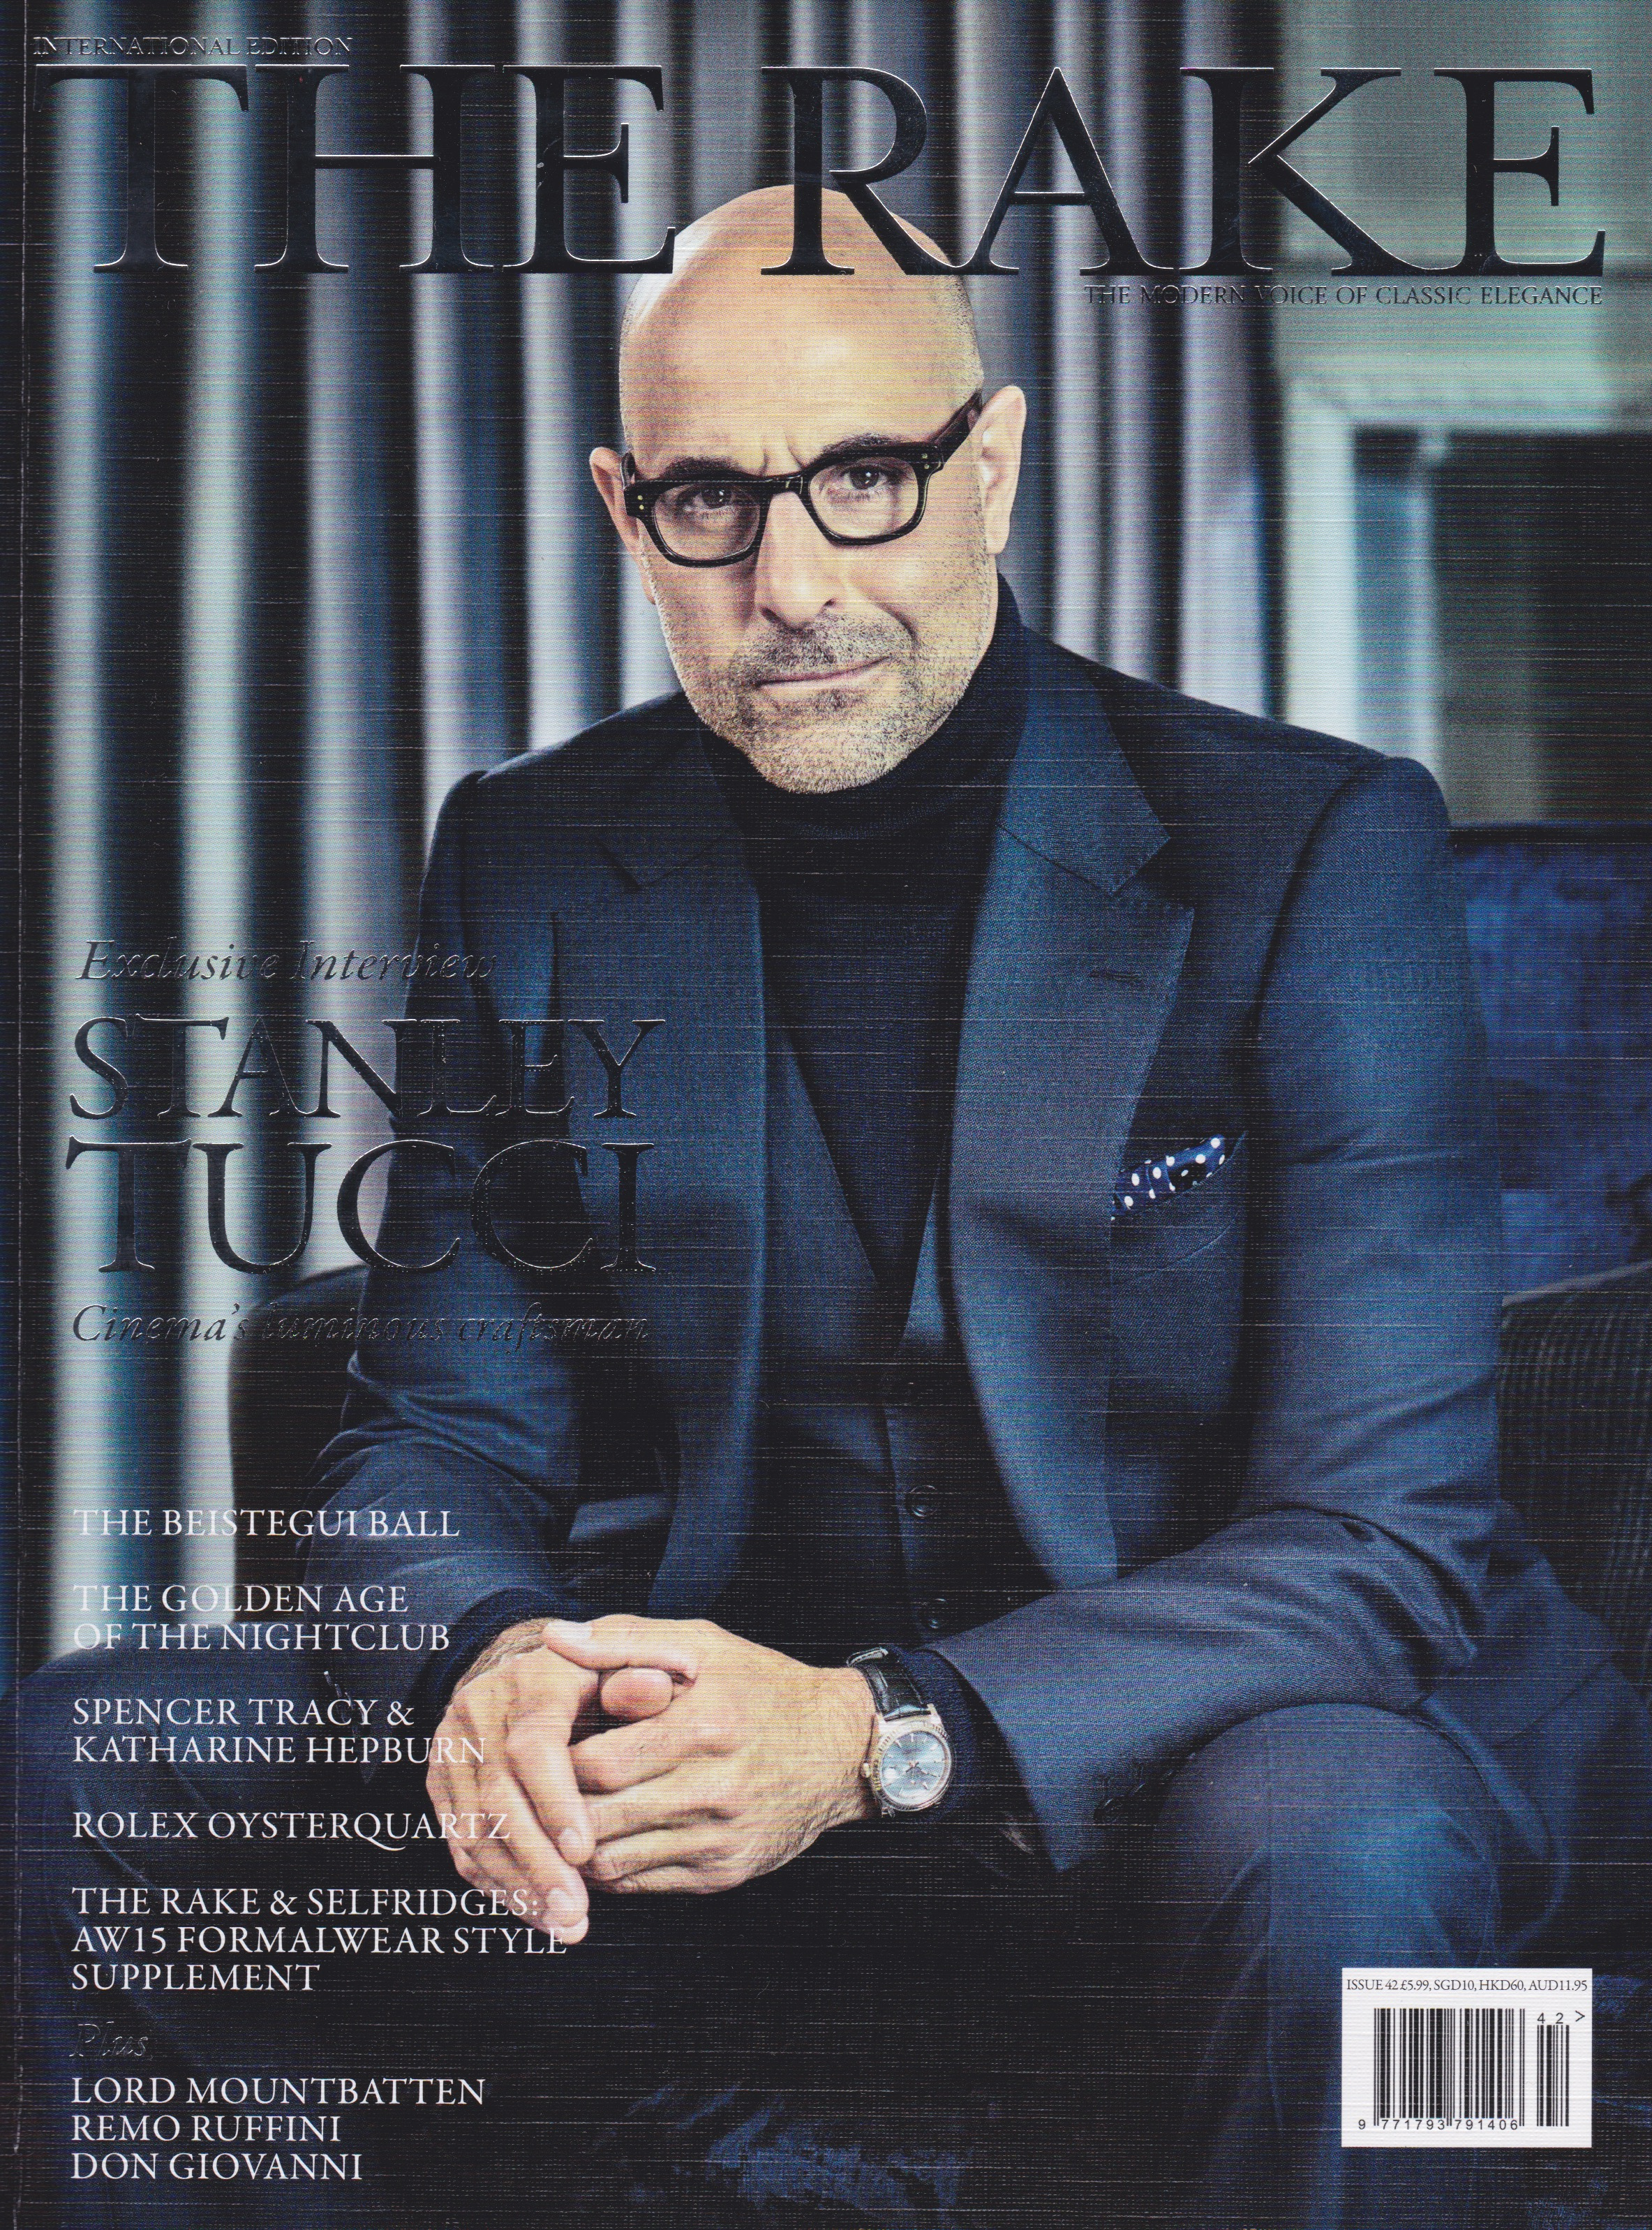 The Rake Magazine Issue 42: Stanley Tucci wears Edward Sexton